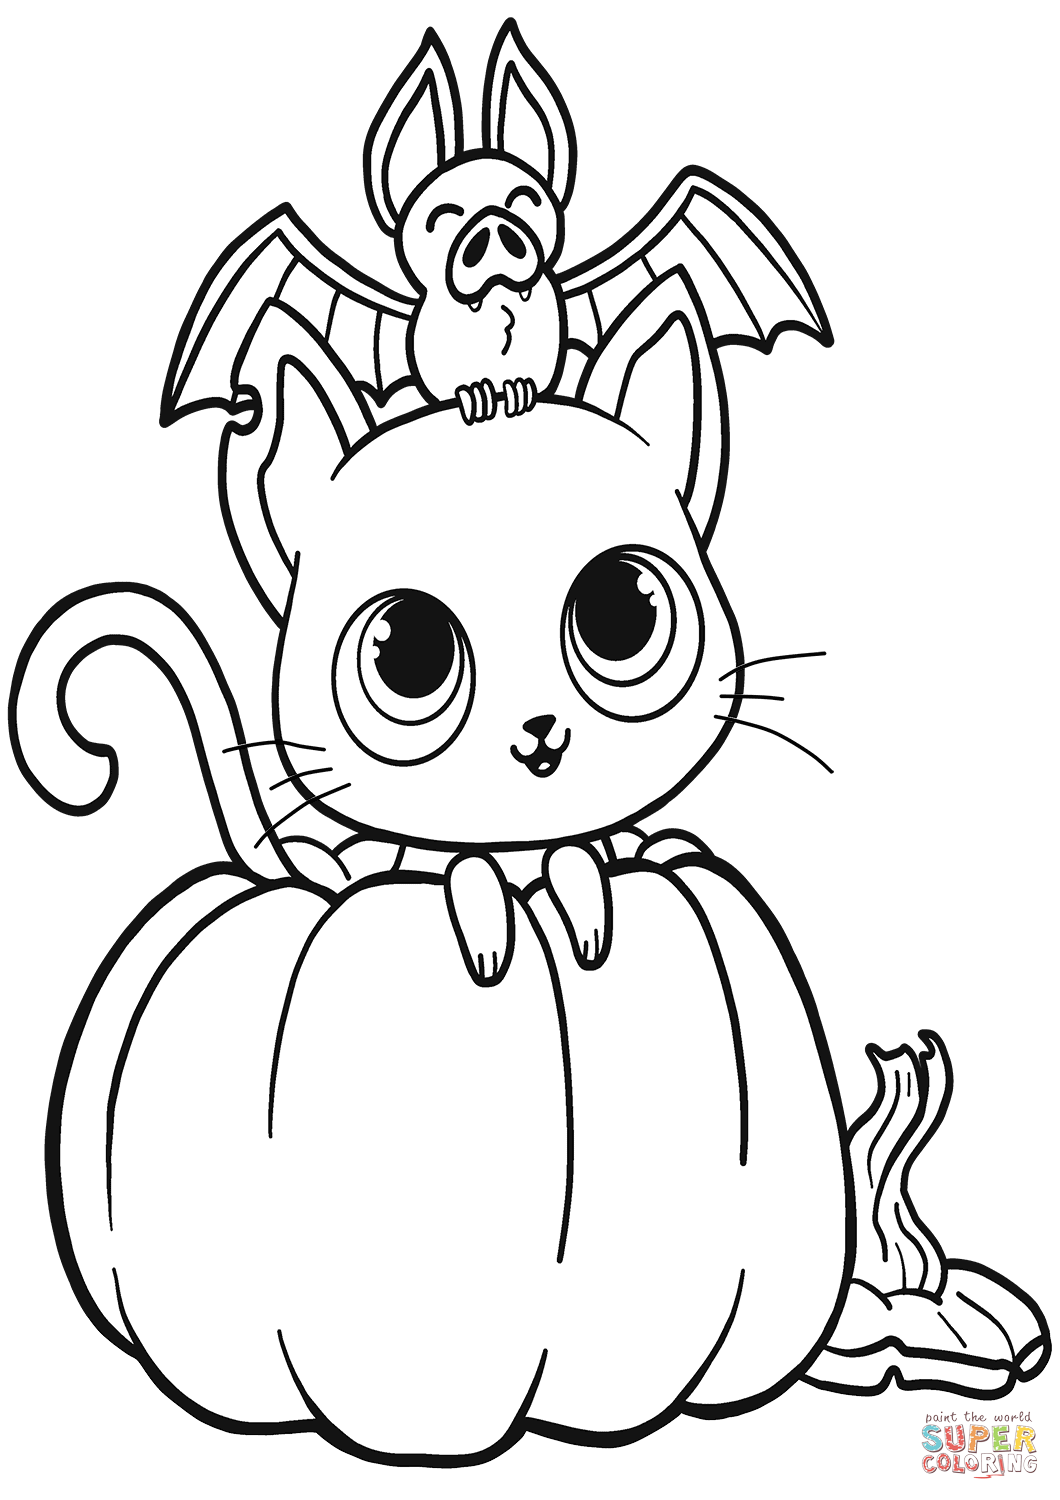 Bat Cat And Pumpkin Coloring Page Free Printable Coloring Pages Halloween Coloring Pages Printable Halloween Coloring Pages Bat Coloring Pages